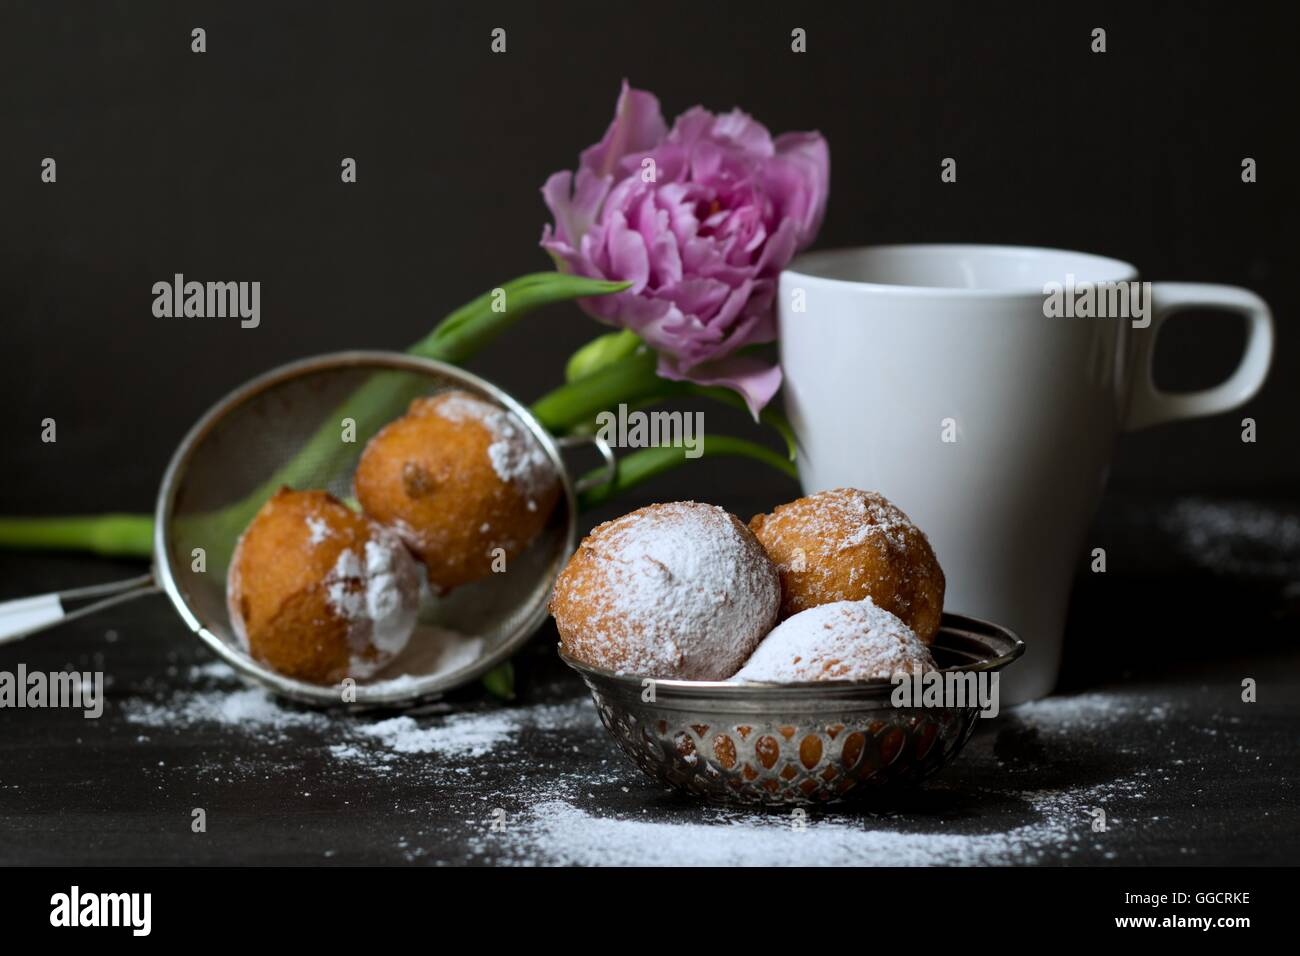 Jelly doughnuts, pink tulip and cup - Stock Image